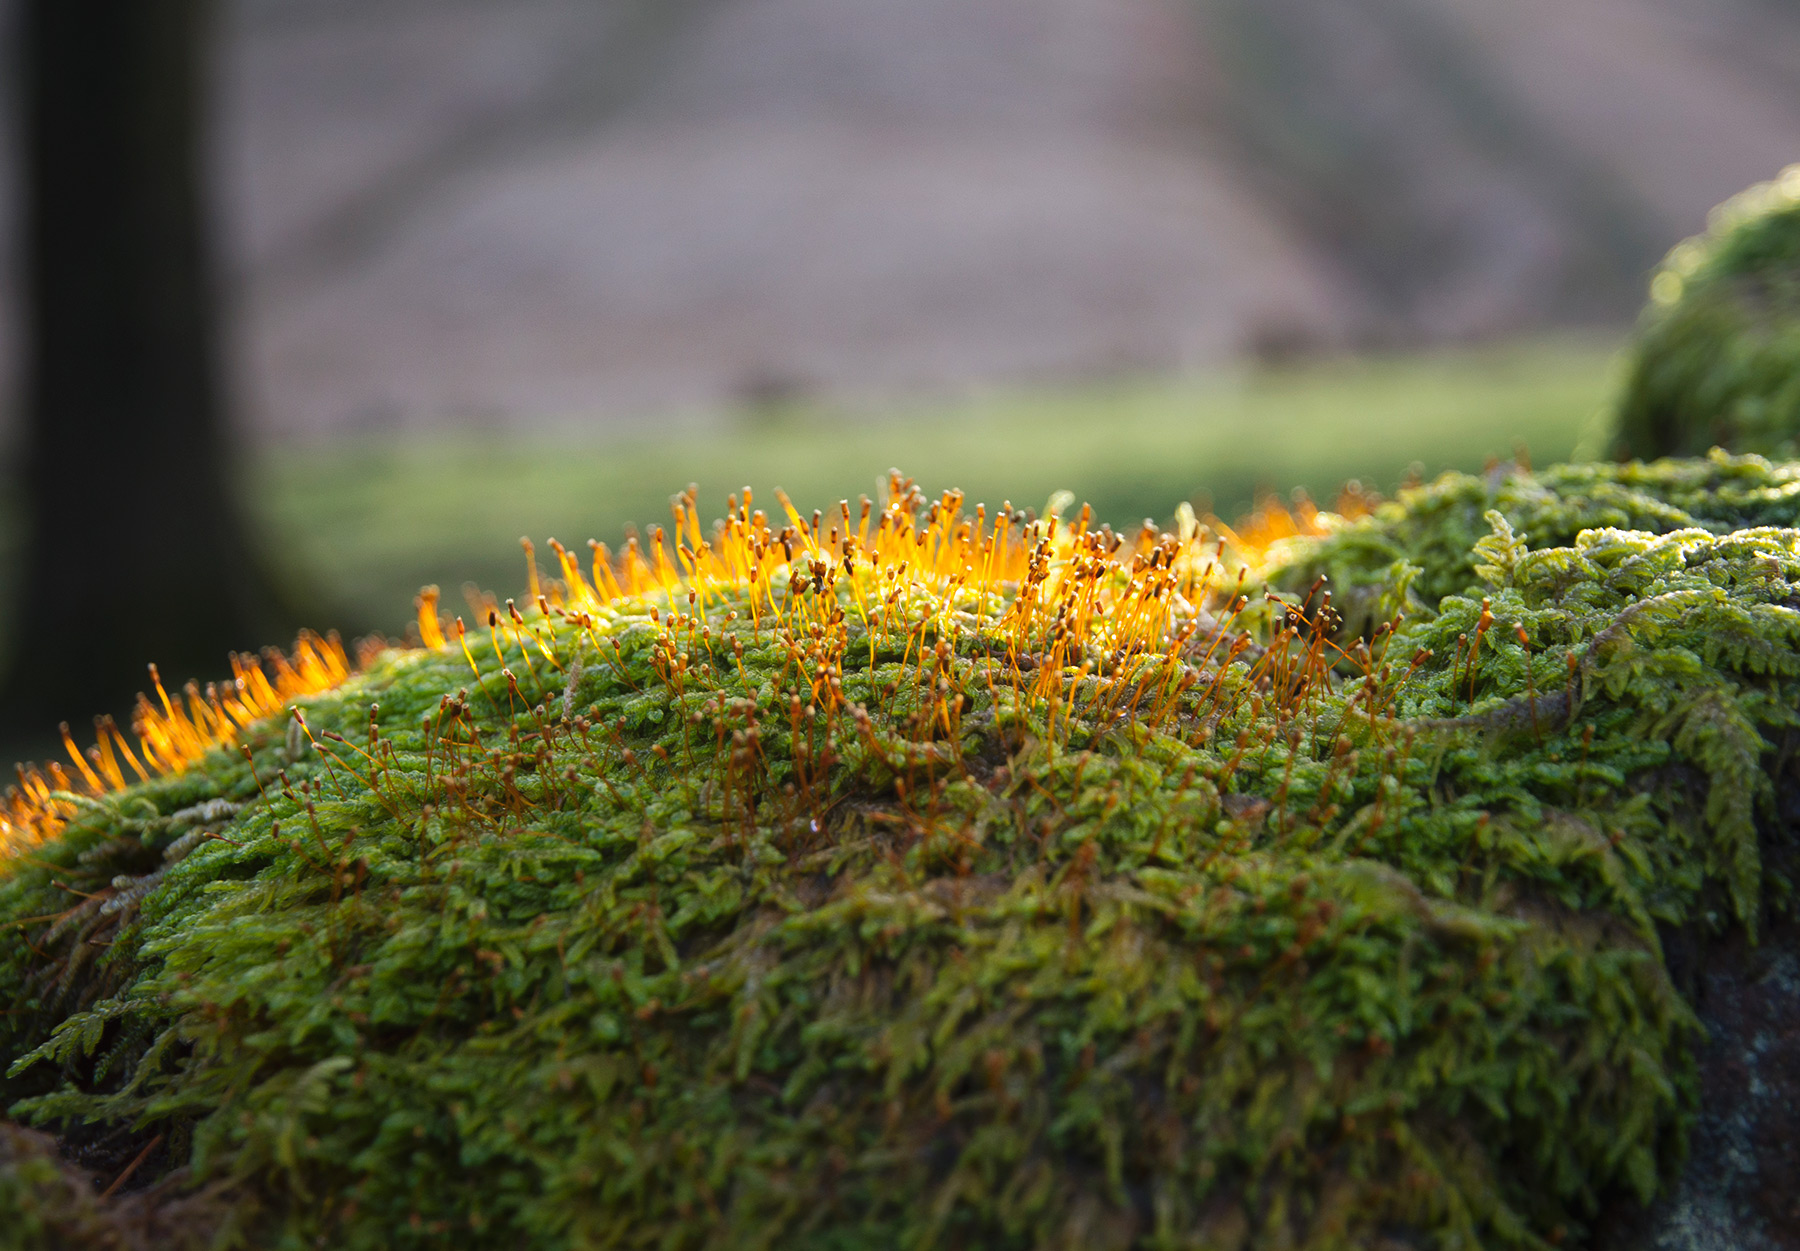 Bright yellow moss